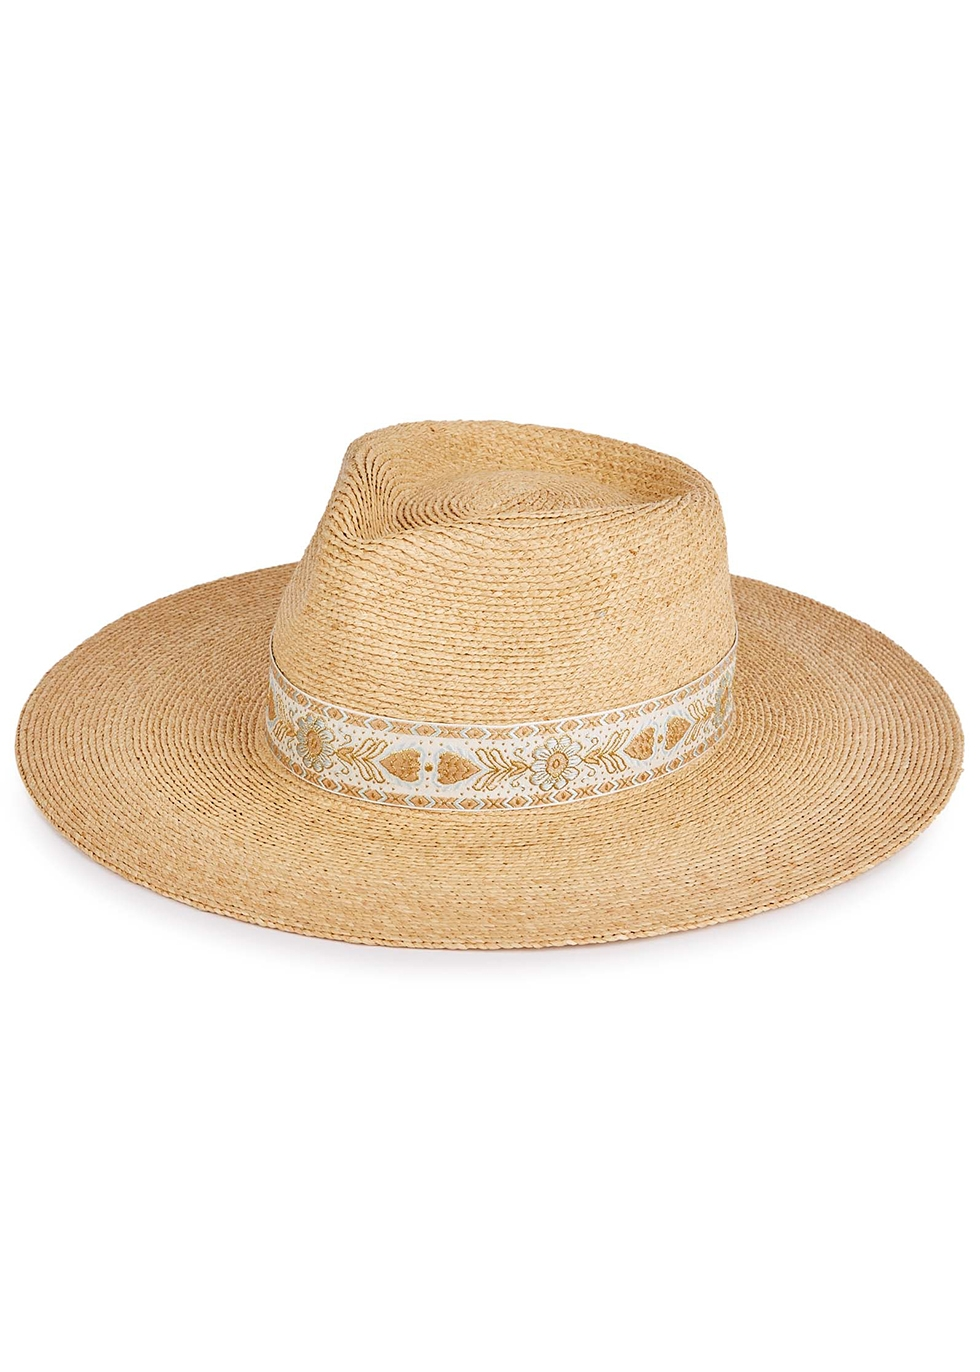 Indio Special sand woven straw fedora